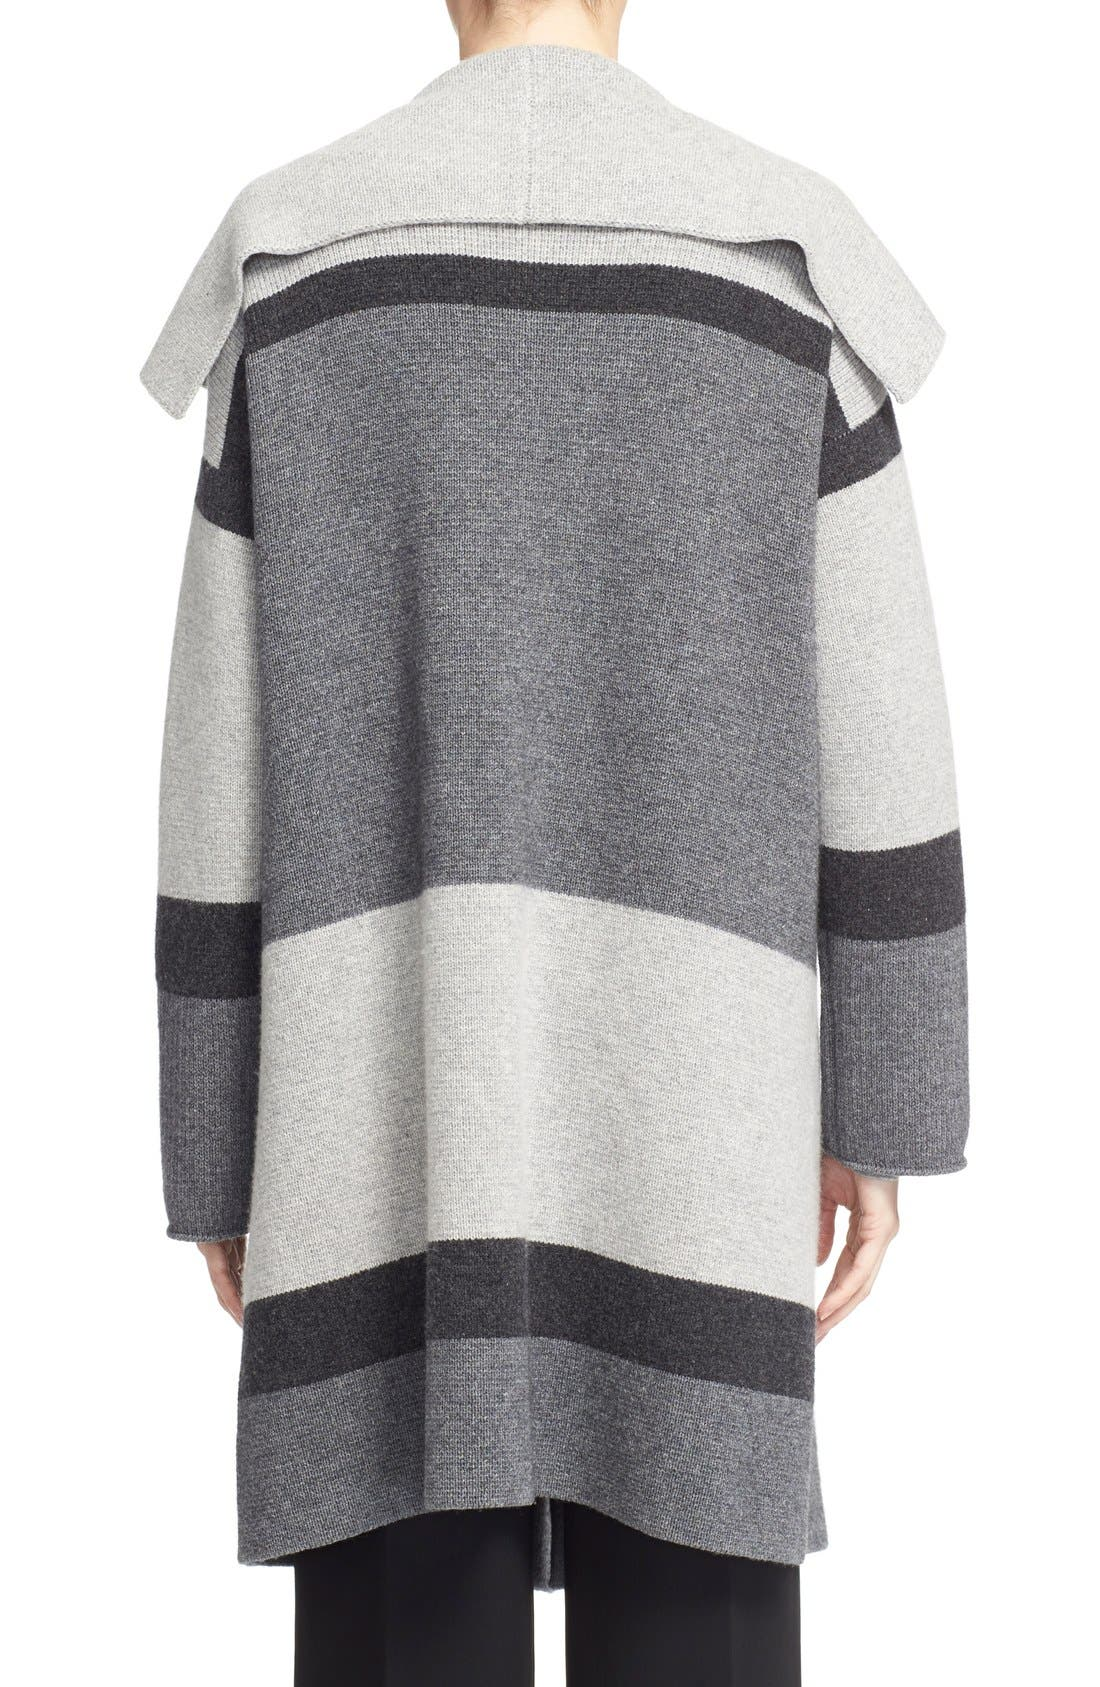 Colorblock Wool & Cashmere Knit Car Coat,                             Alternate thumbnail 3, color,                             Heather Steal/ Stone/ Carbon